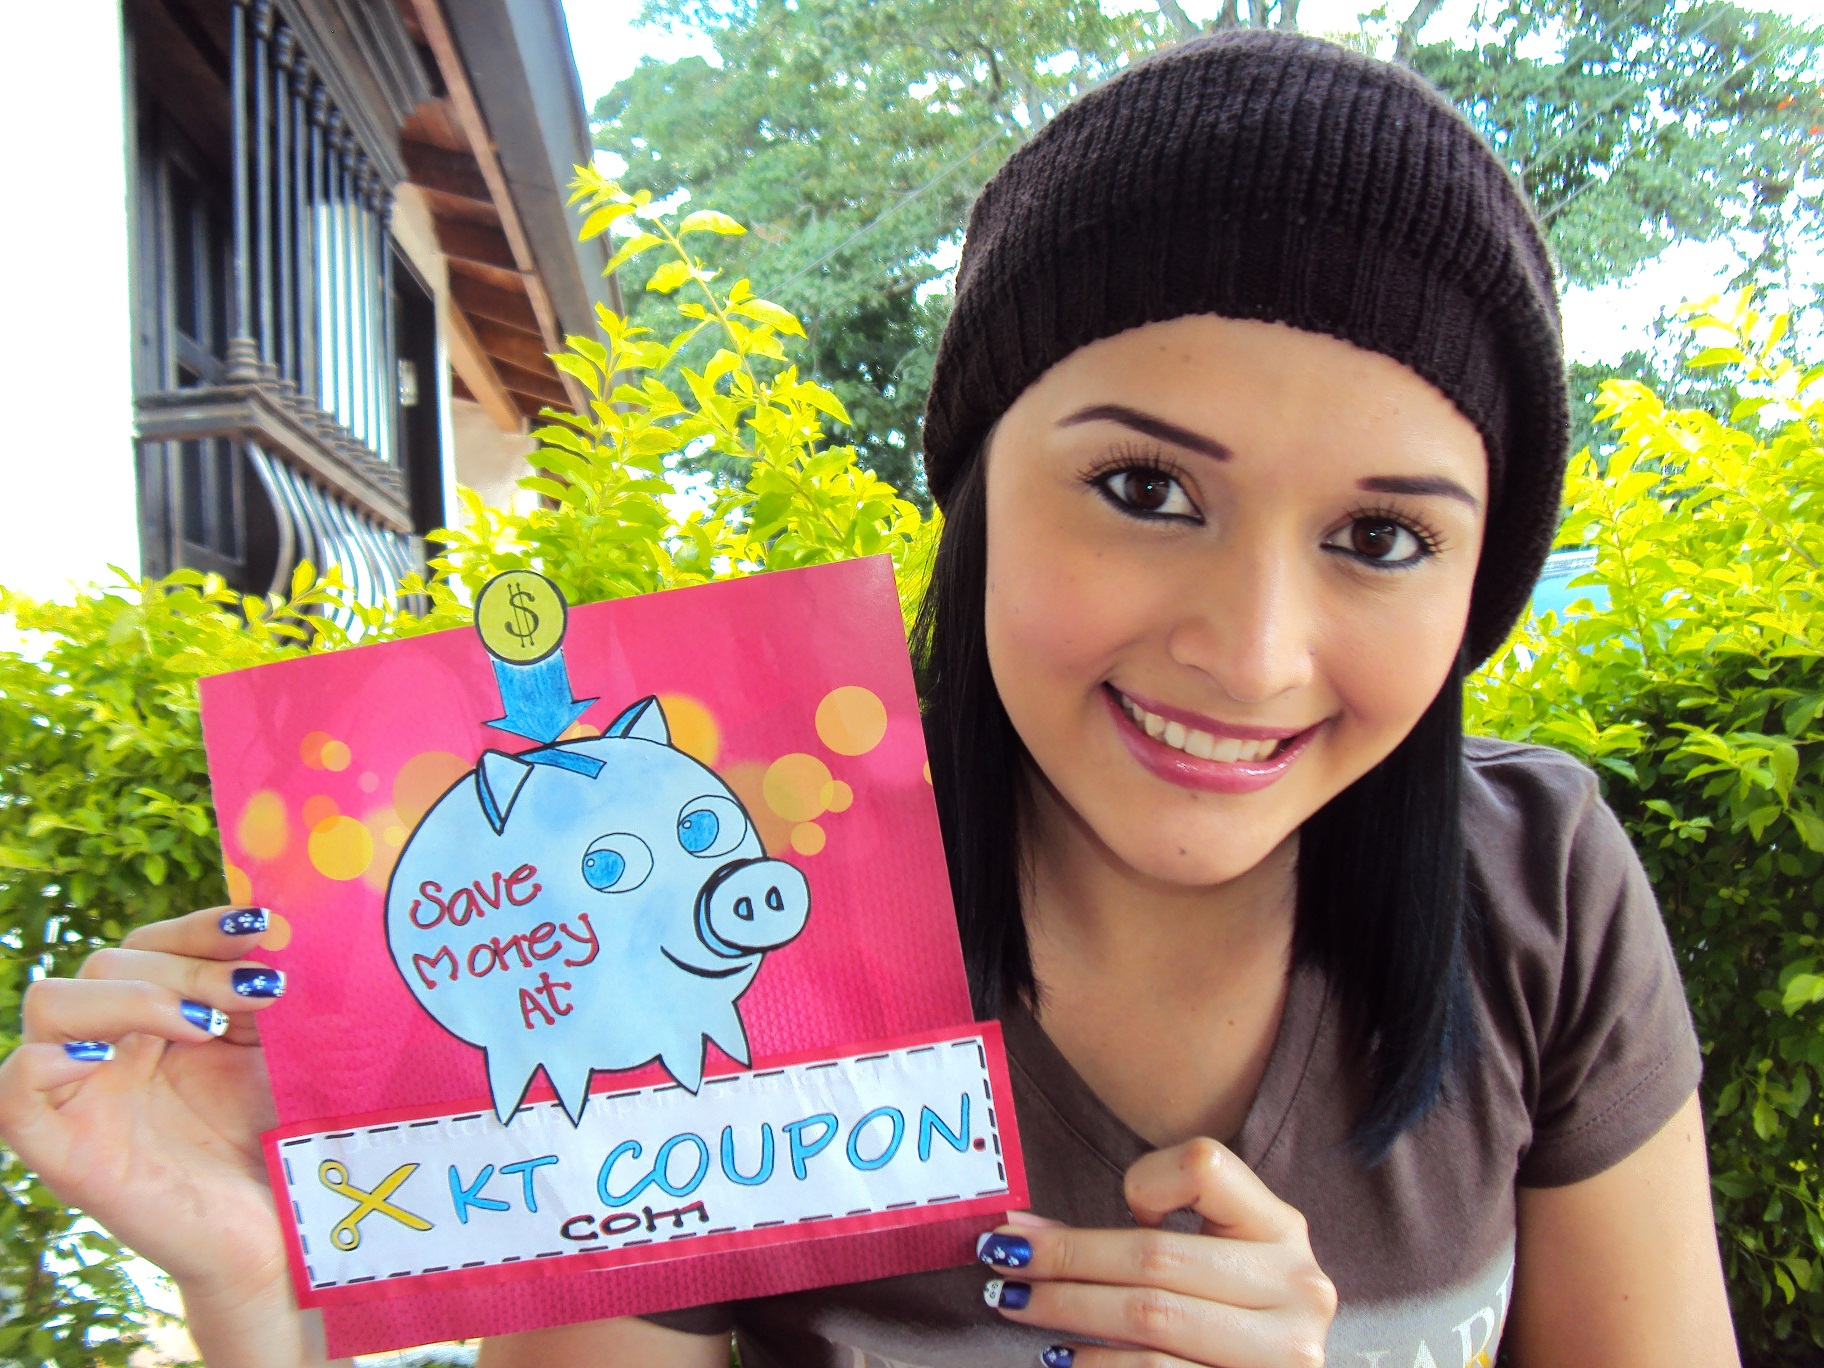 Save Money at KT Coupon